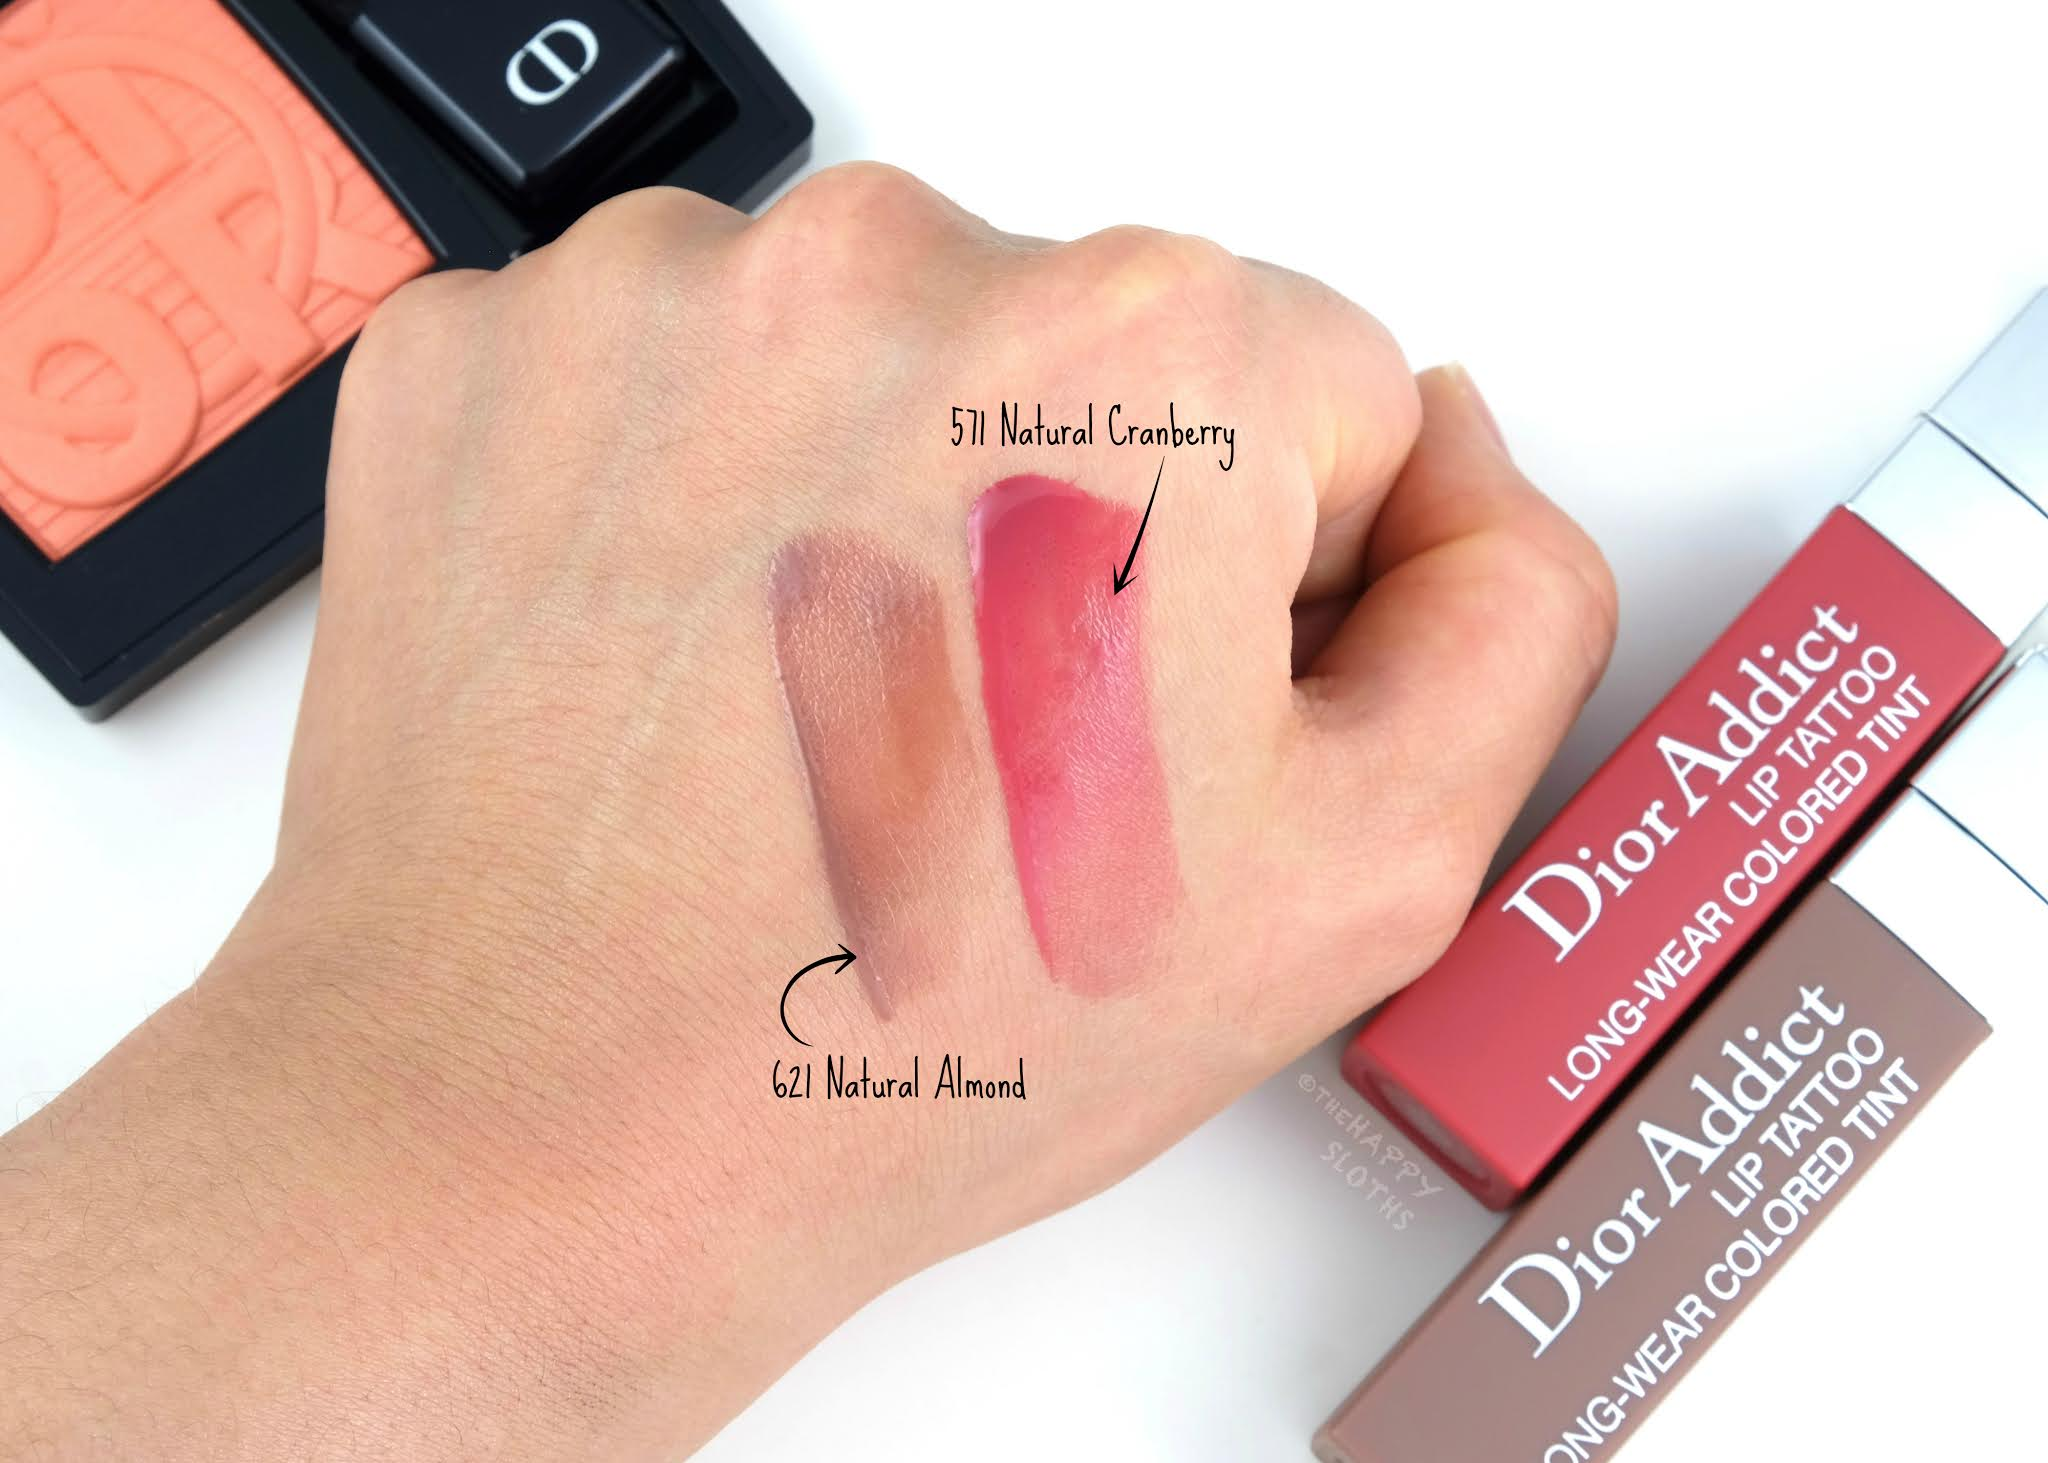 Dior Summer 2020 | Dior Addict Lip Tattoo: Review and Swatches